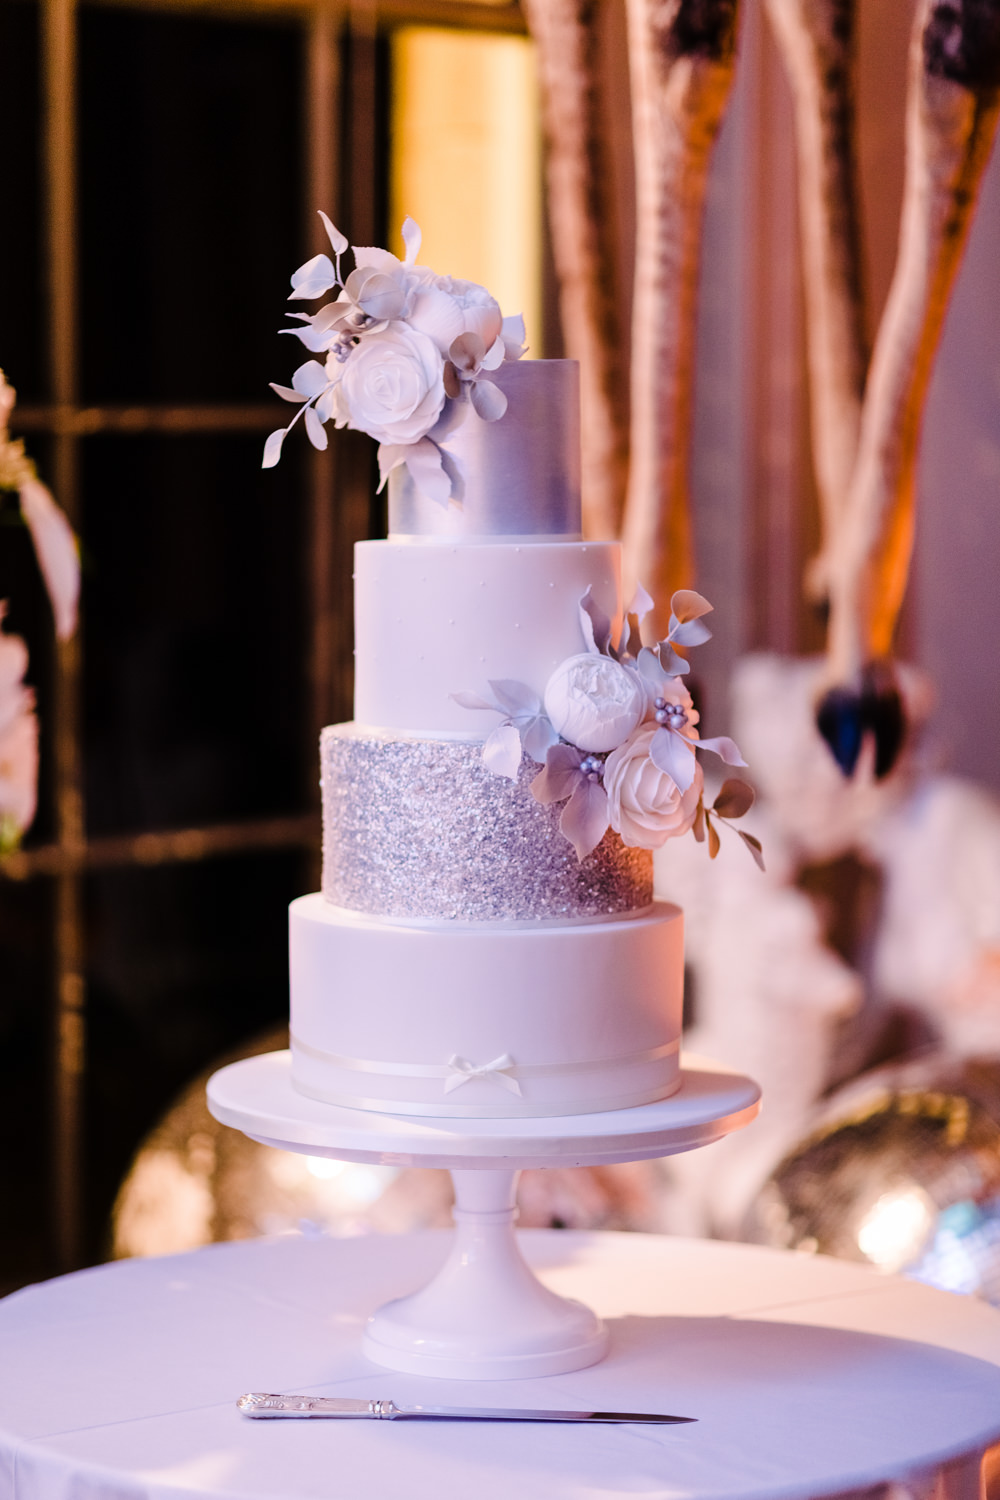 Silver White Sparkly Cake Flowers Tiered Stand Aynhoe Park Wedding Sanshine Photography